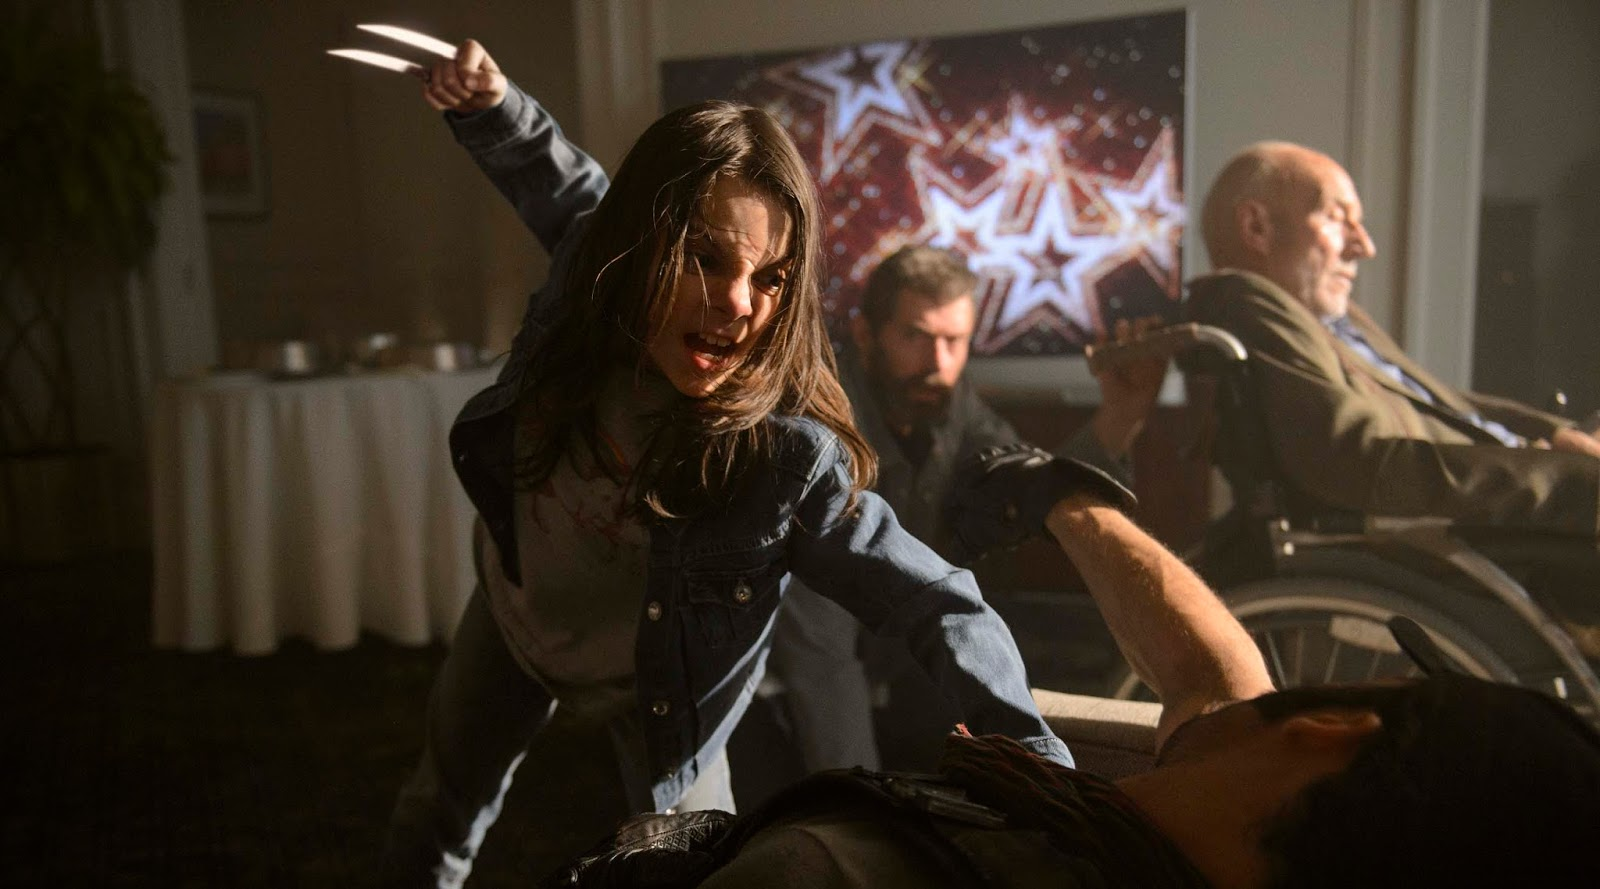 Review Logan 2017 Packed With Graphically Violent Action F Bombs Depth Feels Colourlessopinions Com